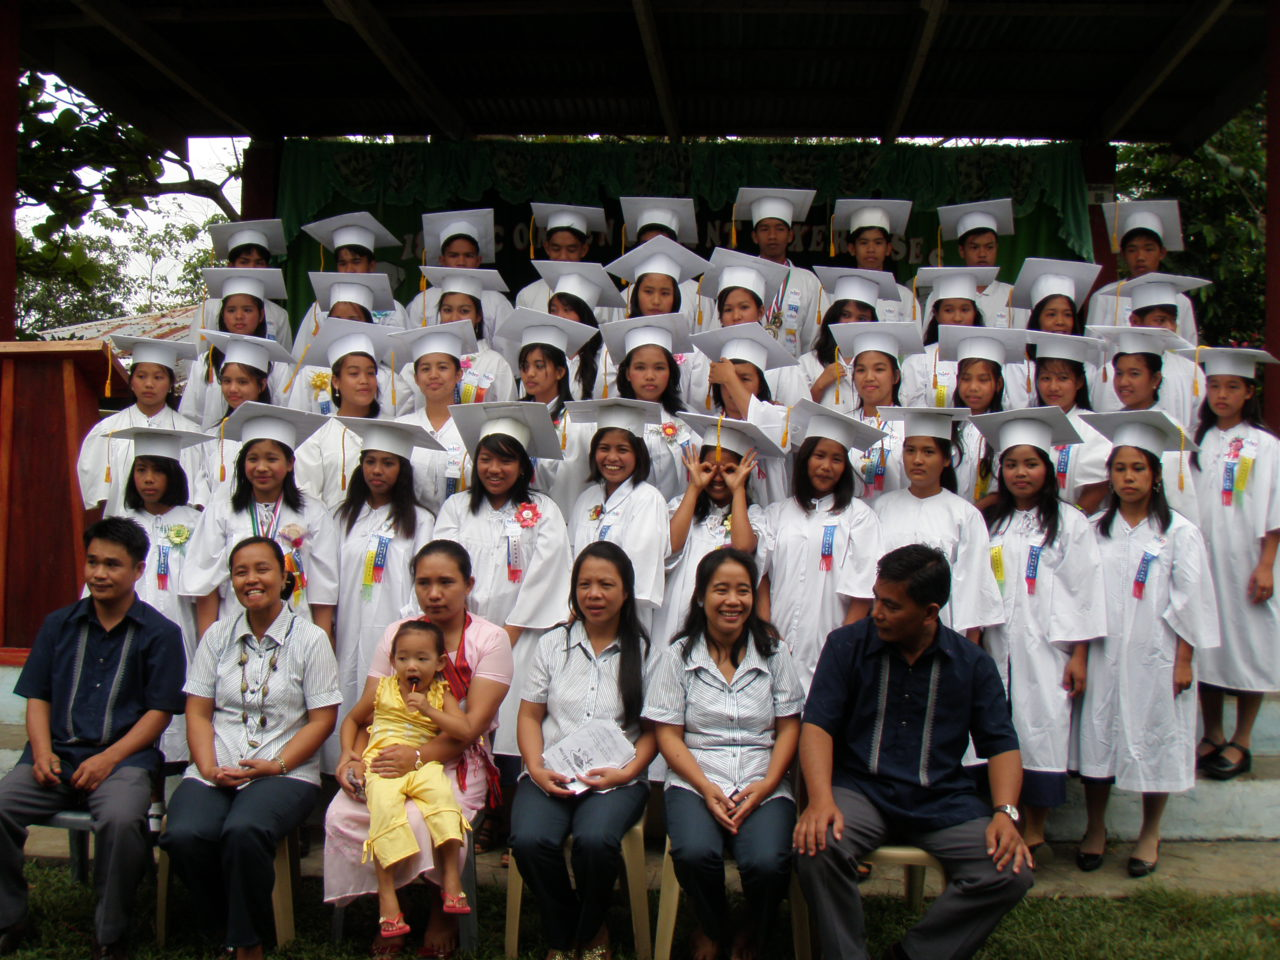 School High The Graduation In Villages Of My Philippines Philippines